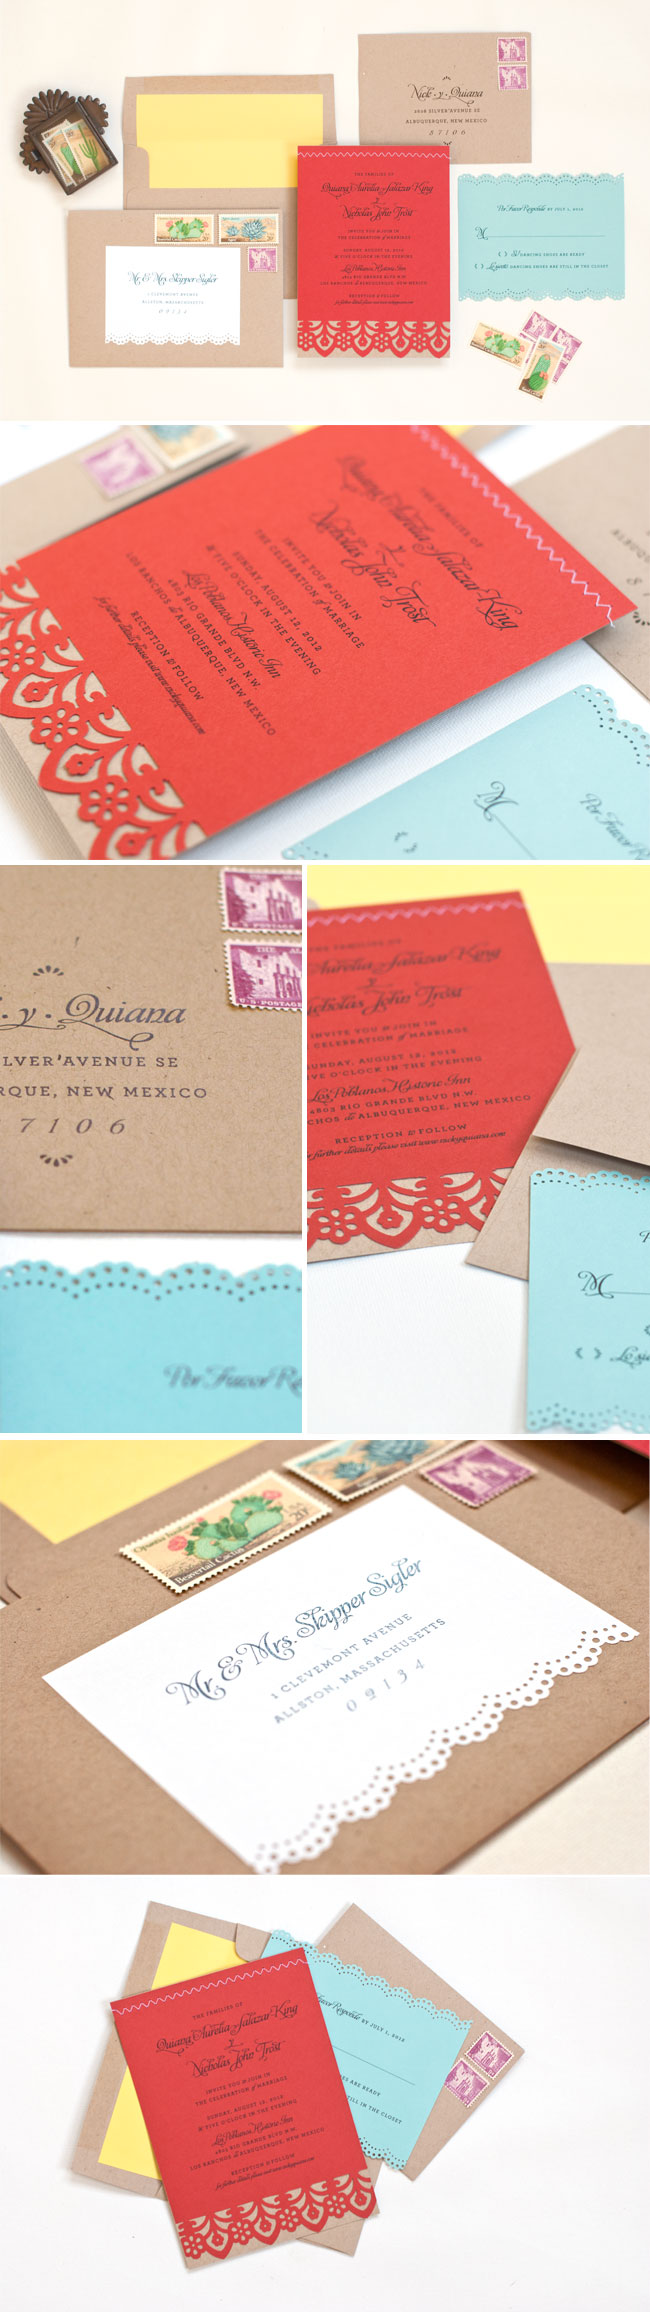 Fiesta wedding invitation • Lilly & Louise • lillyandlouise.com ...